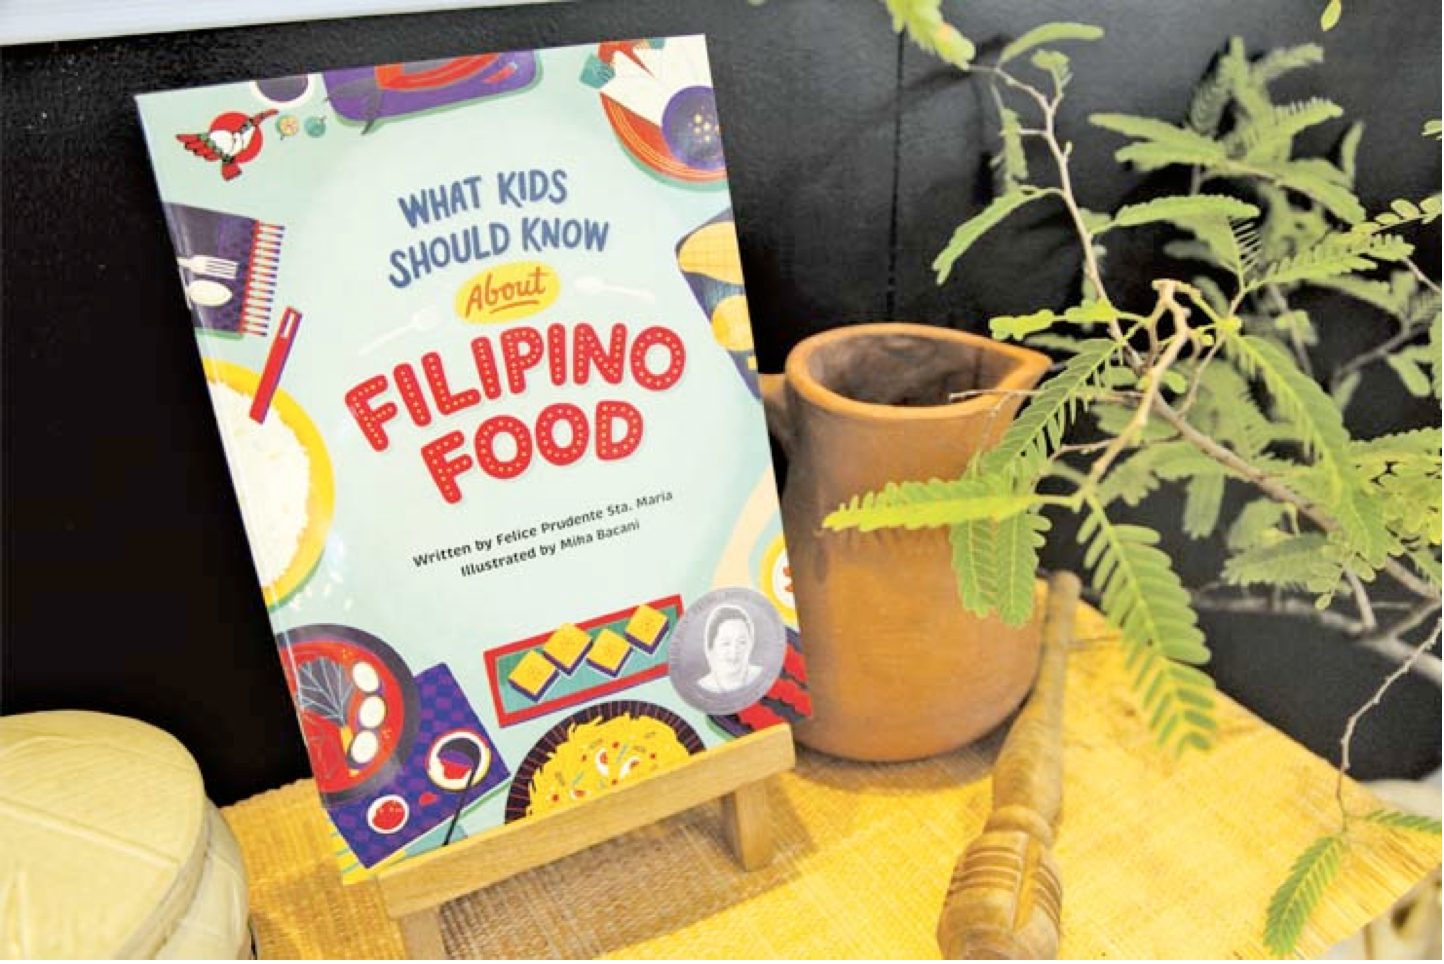 Book of What Kids Should Know About Filipino Food